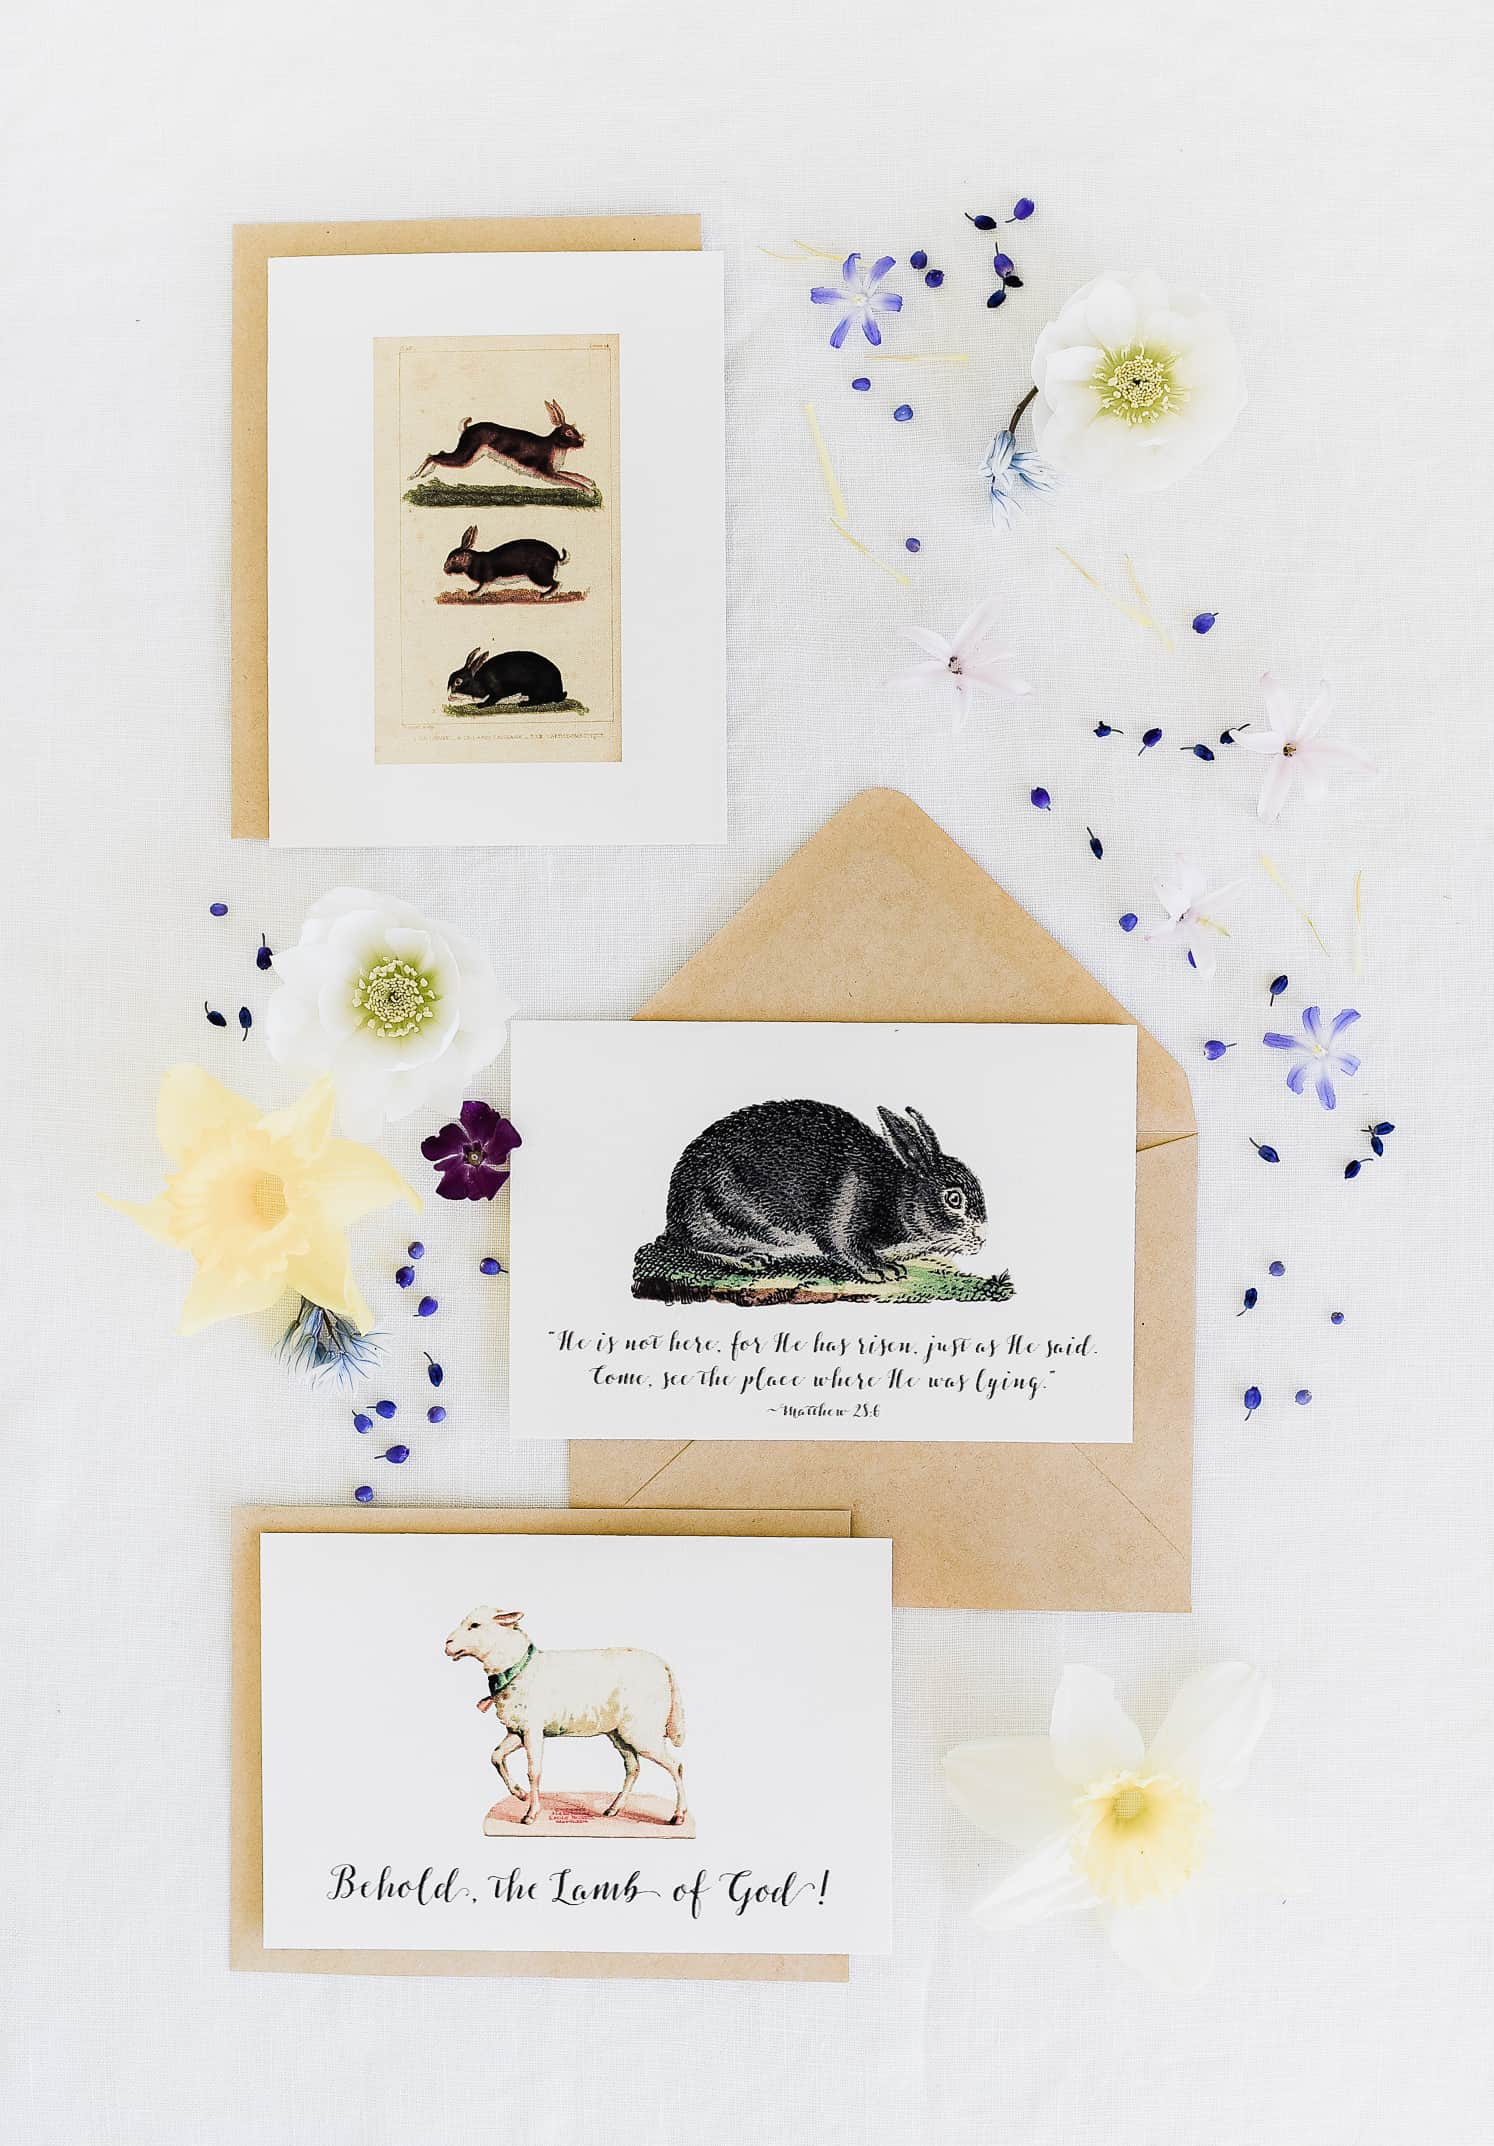 printable easter cards with rabbits, goats, and quotes